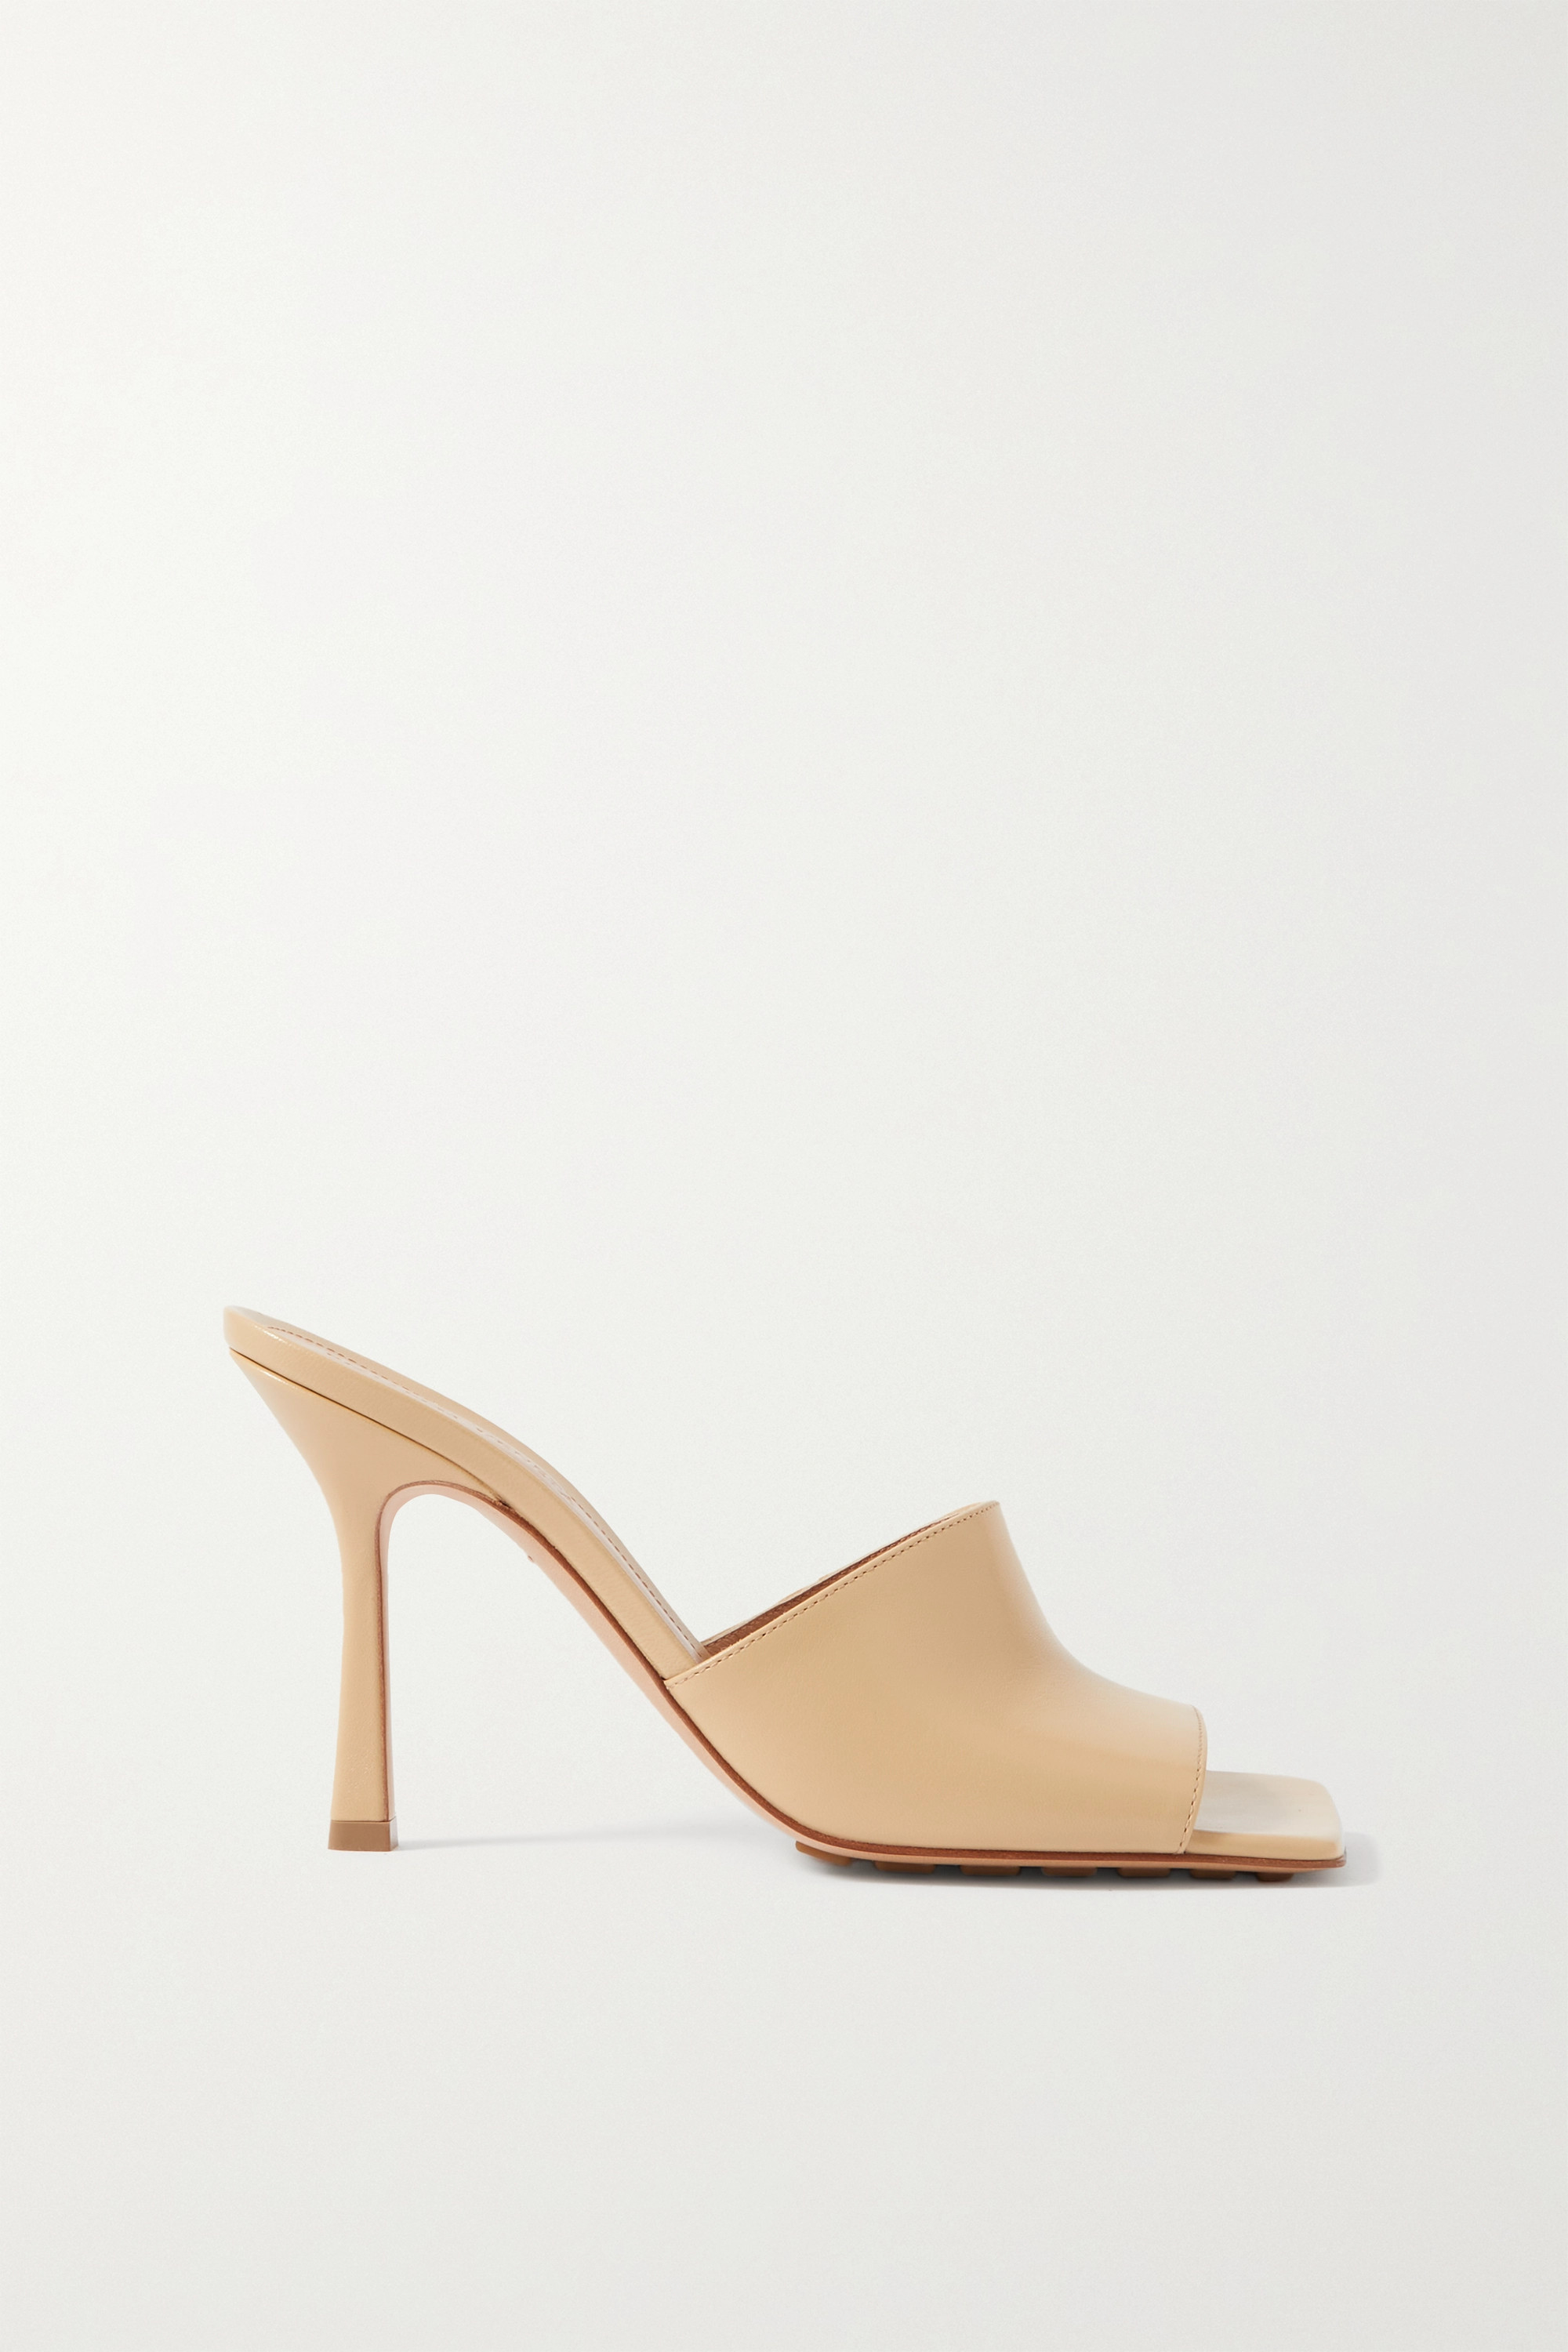 BOTTEGA VENETA Leather mules